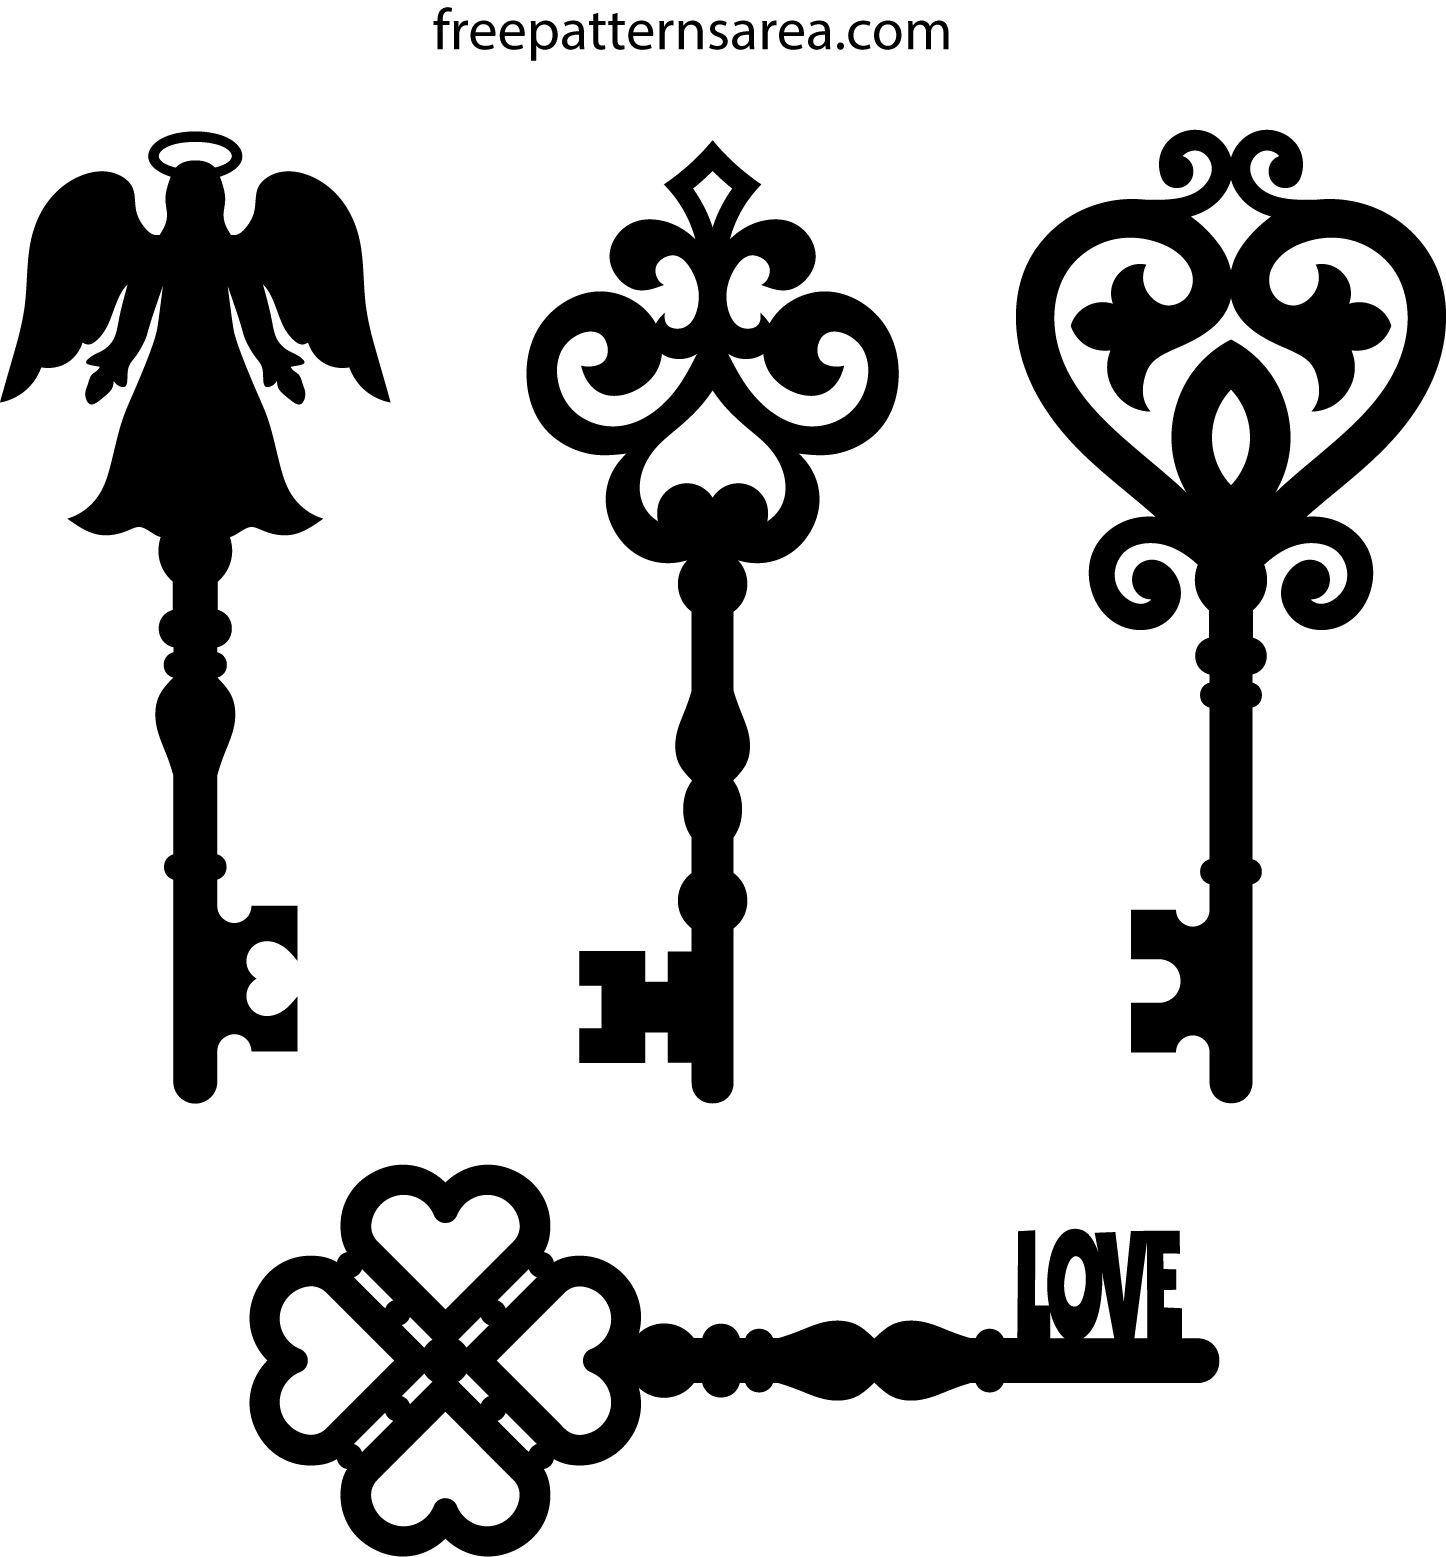 Old Key Clipart Vectors